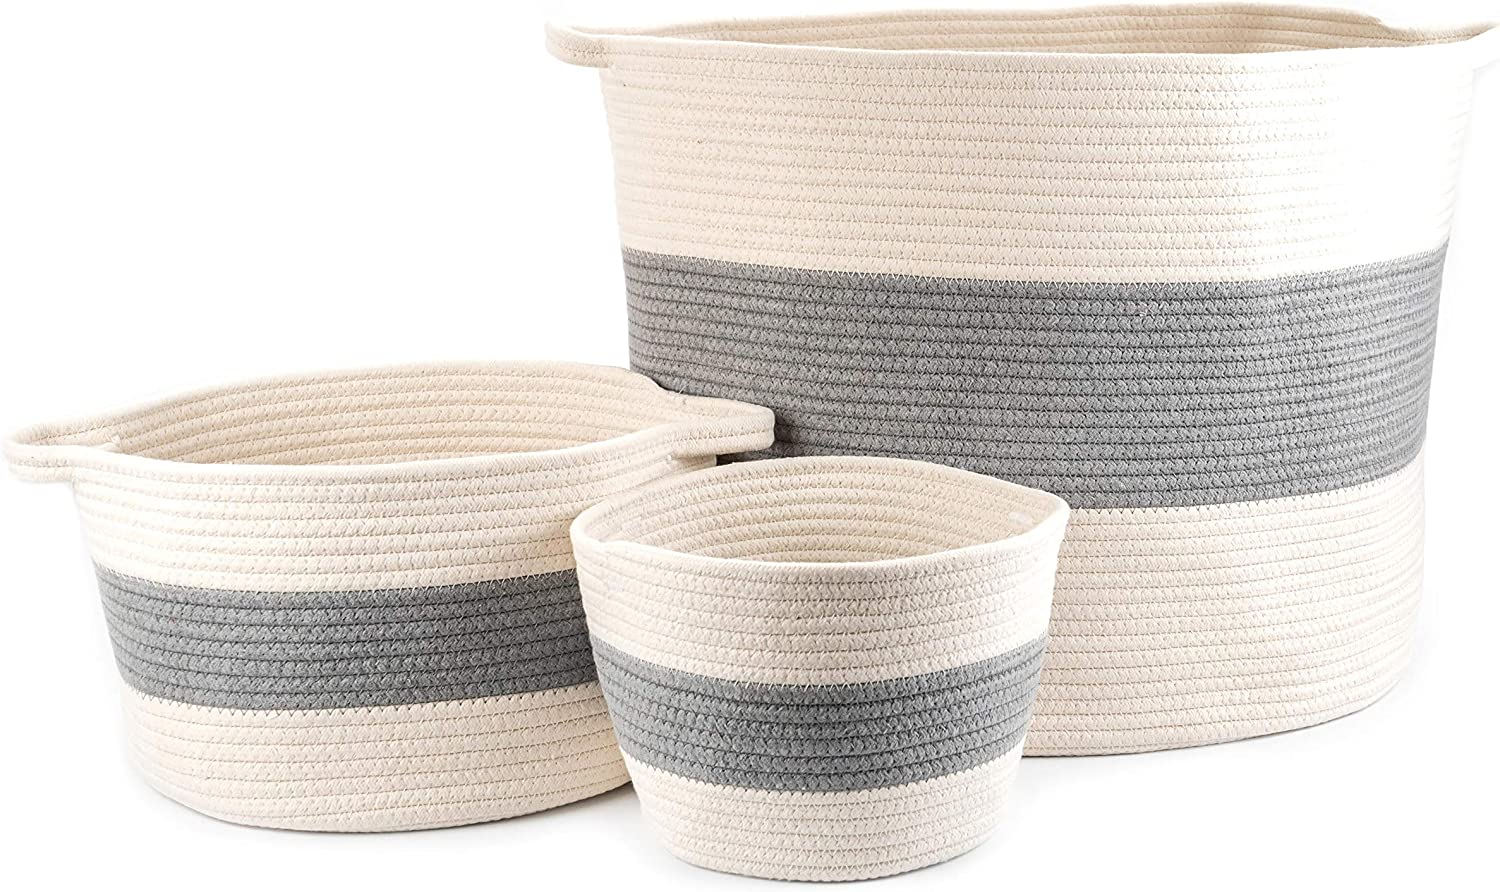 "Little Hippo 3pc Large Cotton Rope Basket (21""x16"") 100% Natural Cotton! Rope Basket, Woven Storage Basket, Large Basket, Blanket Basket Living Room, Toy Basket, Pillow Basket, Round Basket"